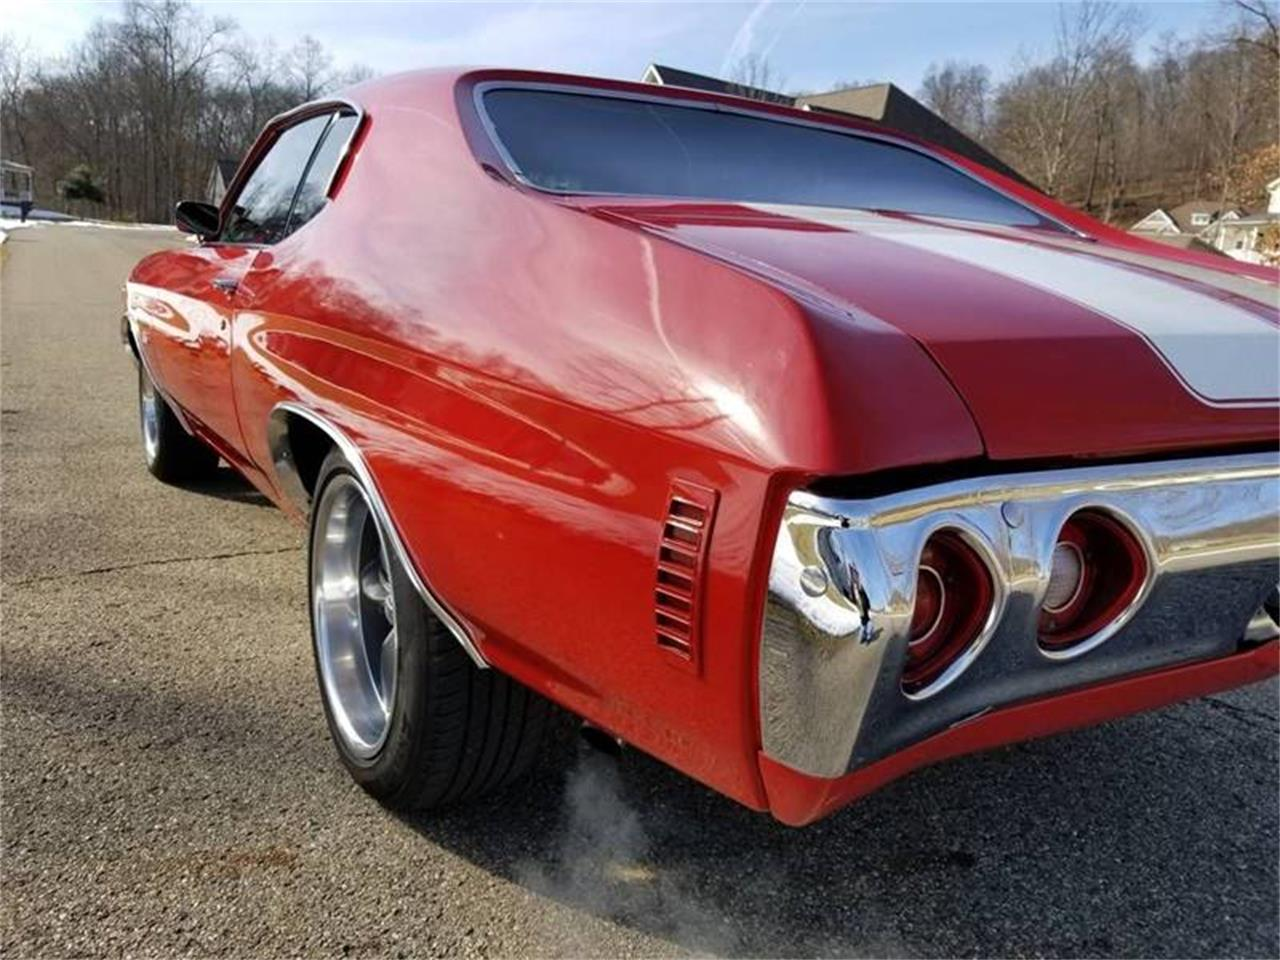 1971 Chevrolet Chevelle for sale in Long Island, NY – photo 4